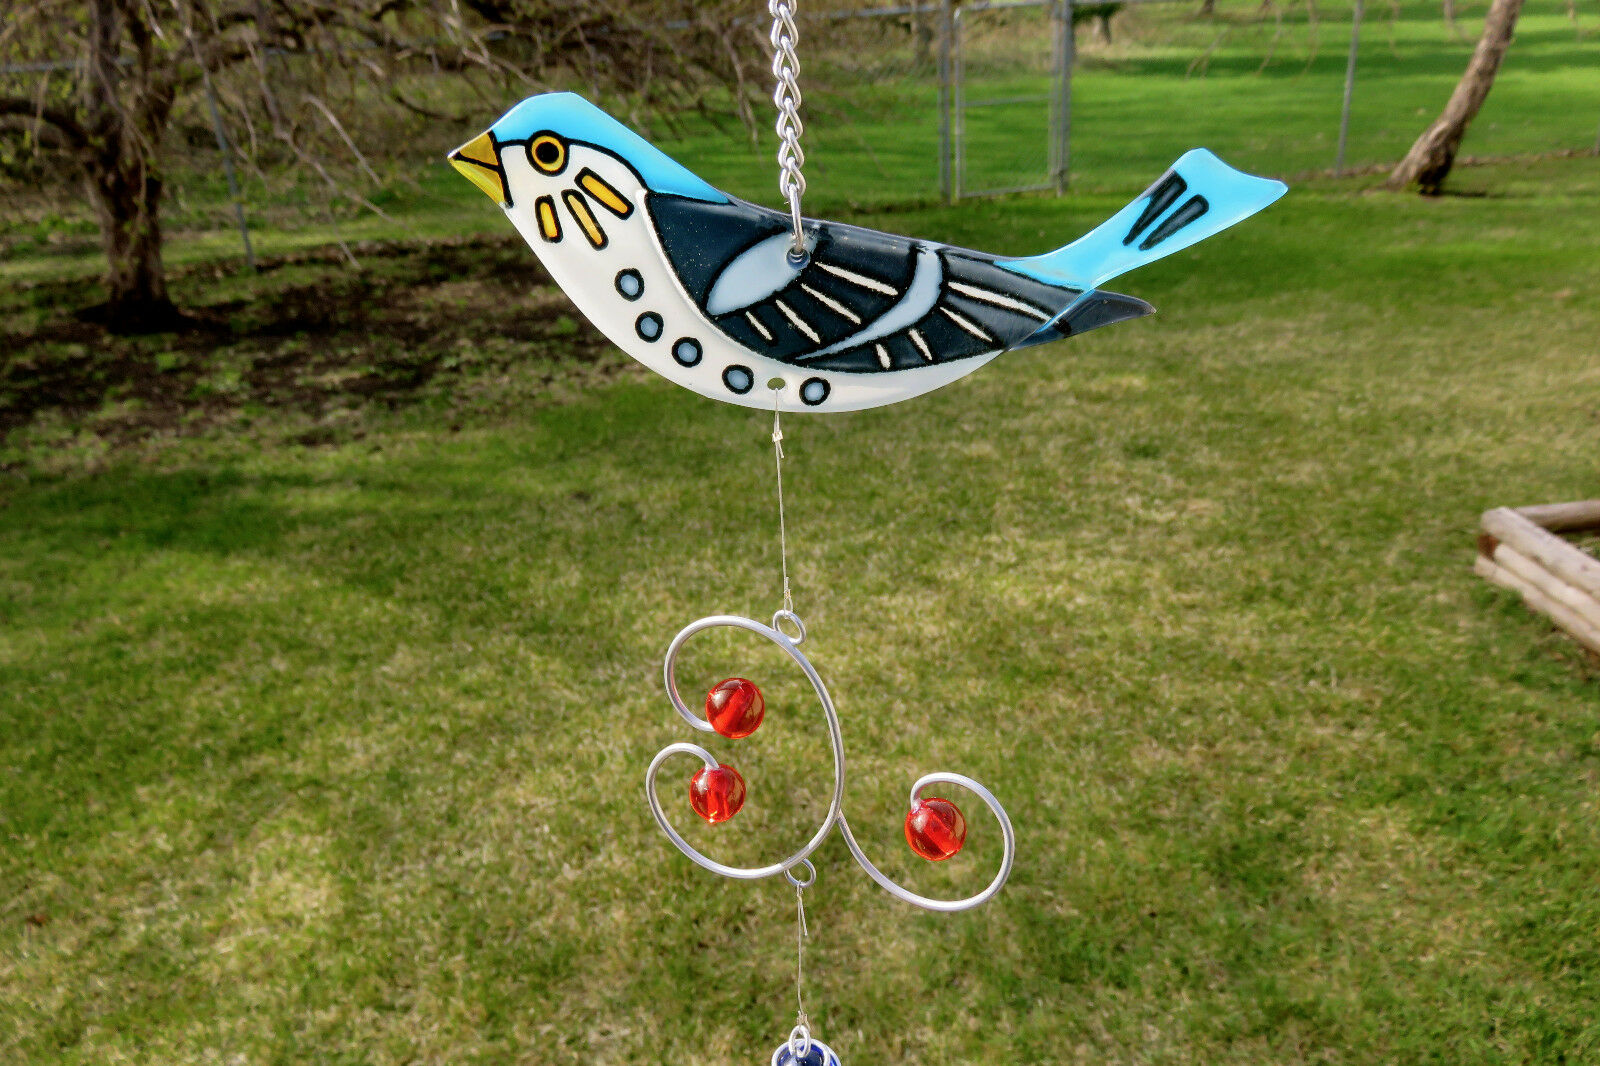 BLUE JAY WIND CHIME GARDEN DECOR YARD ORNAMENT NEW 19 IN. FUSION GLASS BALLS